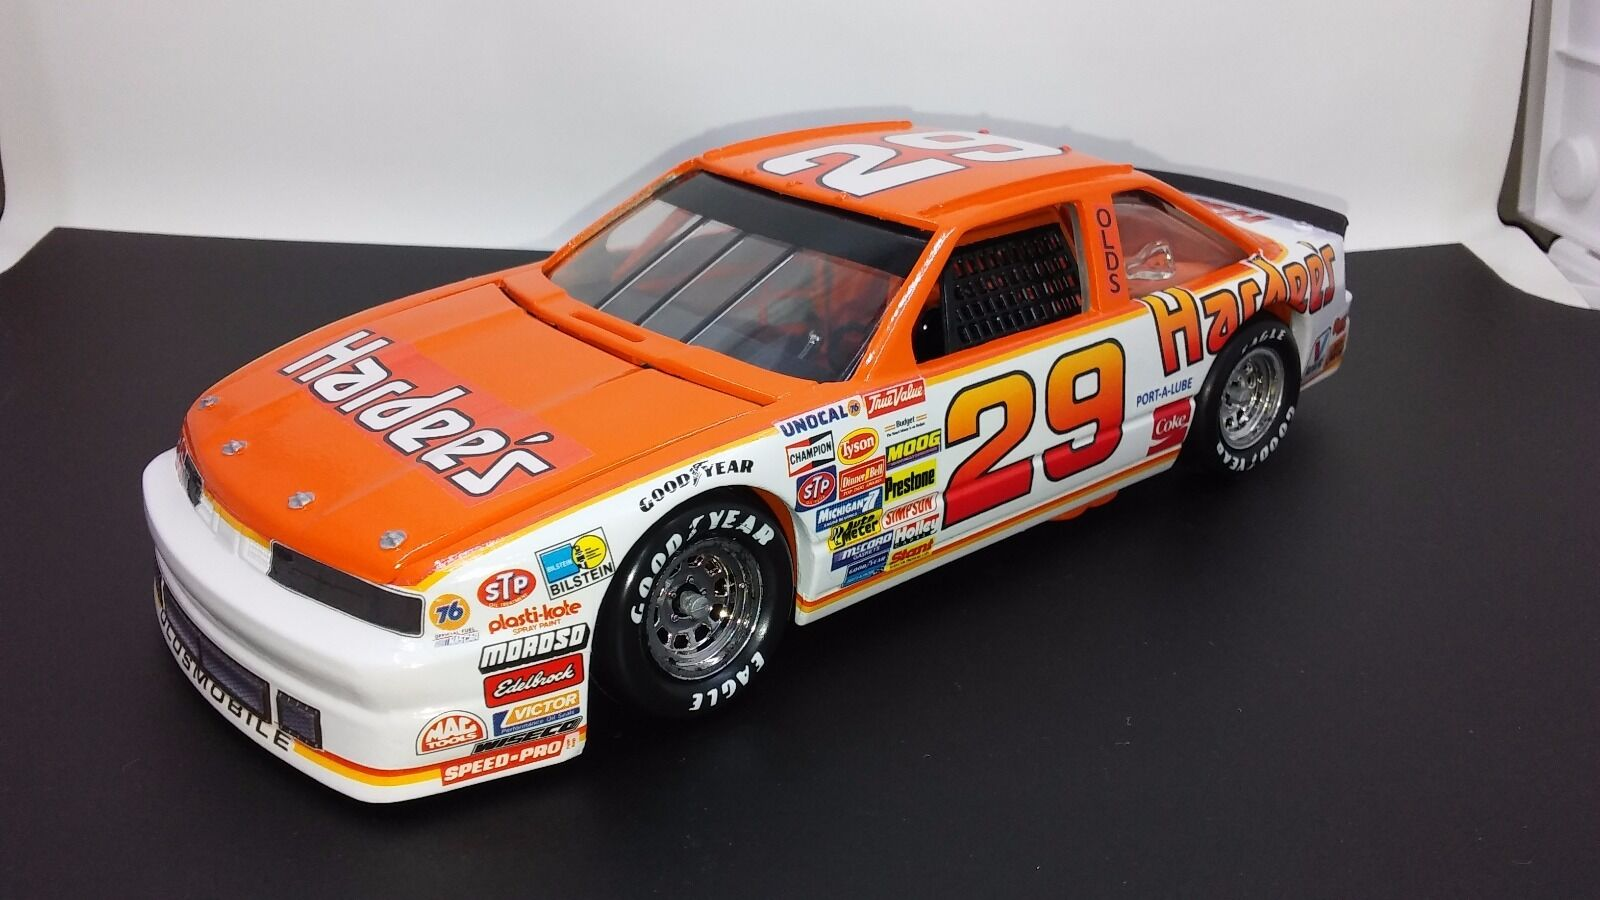 Raro 1988 Cale Yarborough NASCoche Winston Cup Series  29 Hardees 1 24 Diecast